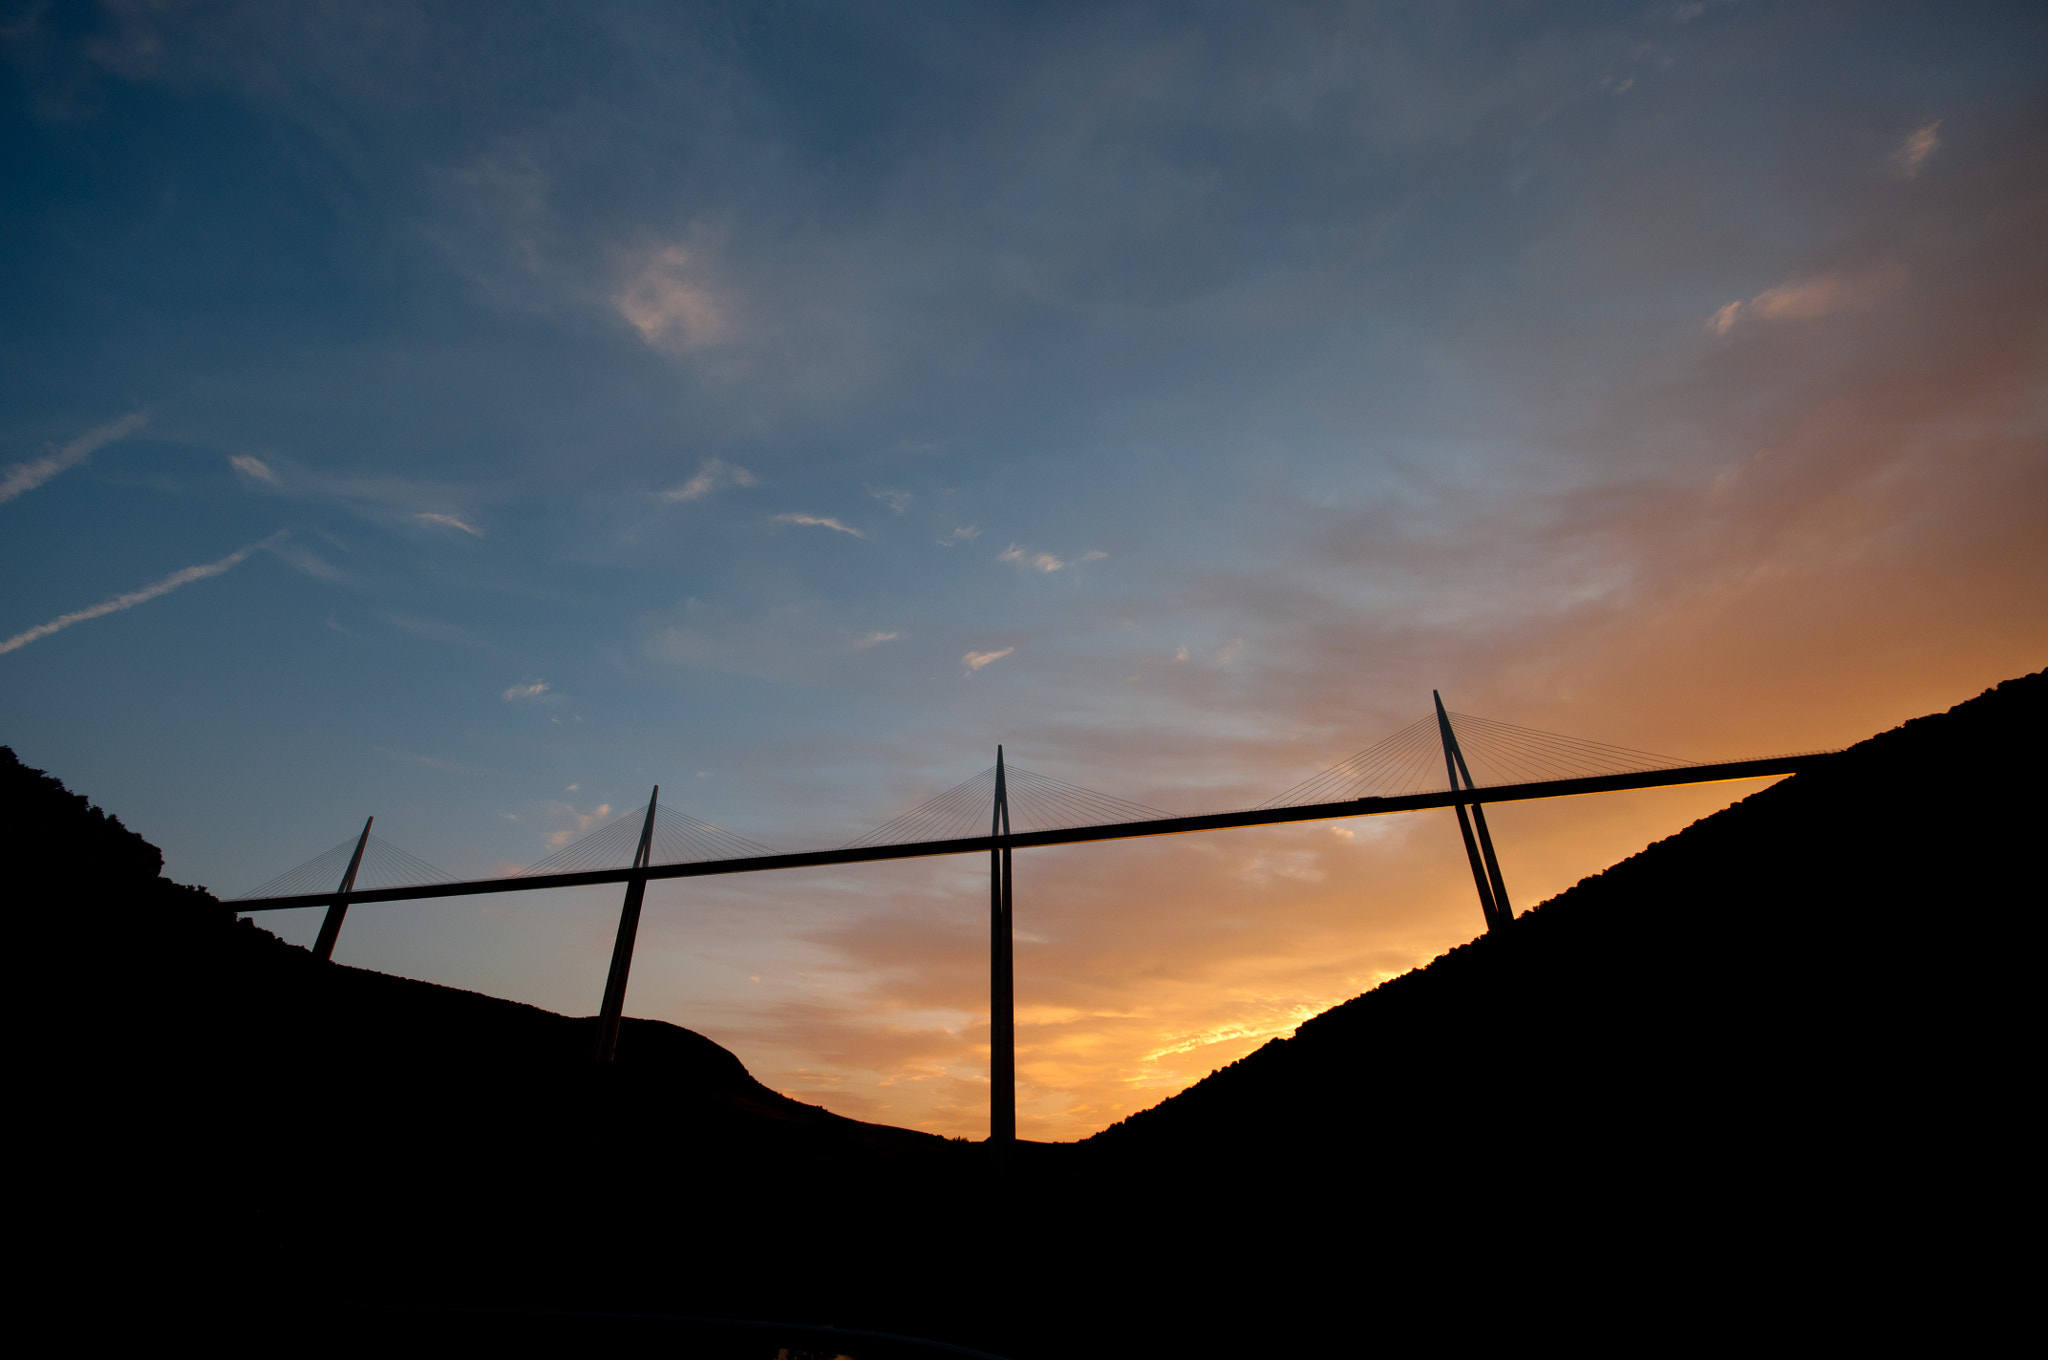 Photograph Millau Viaduct by Niels Boon on 500px